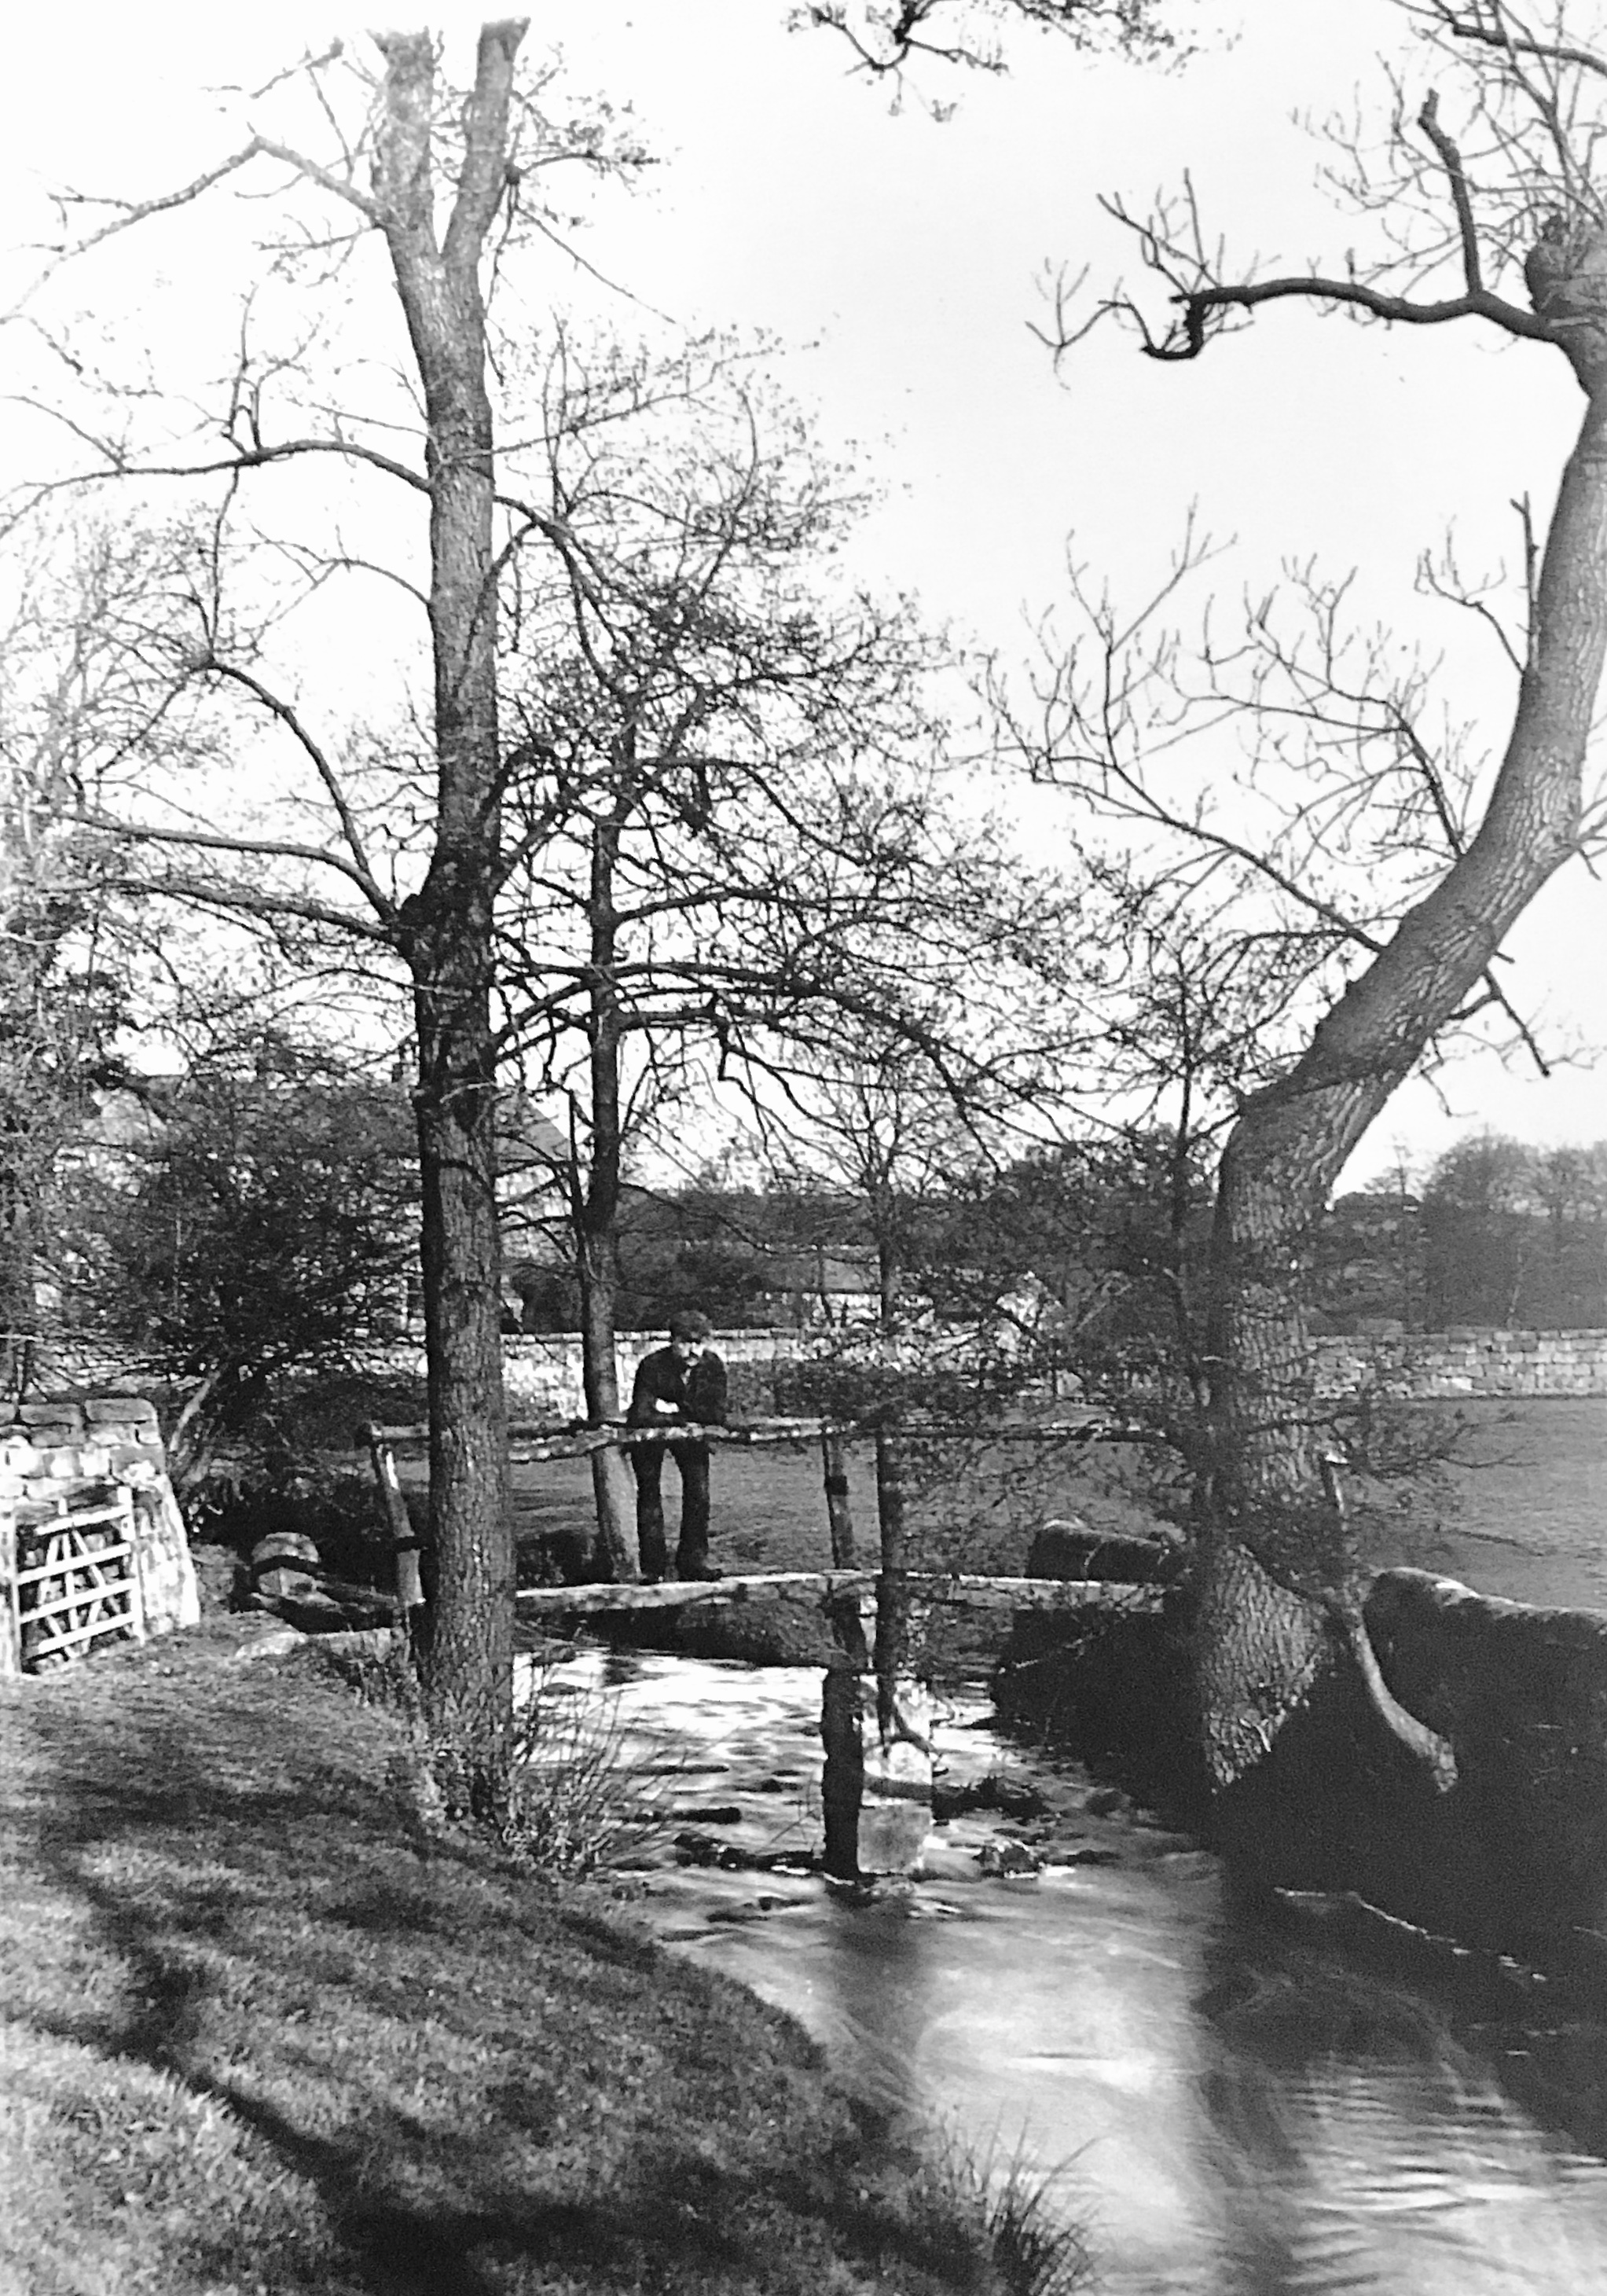 Meanwood Beck with Old Bridge, Circa 1890